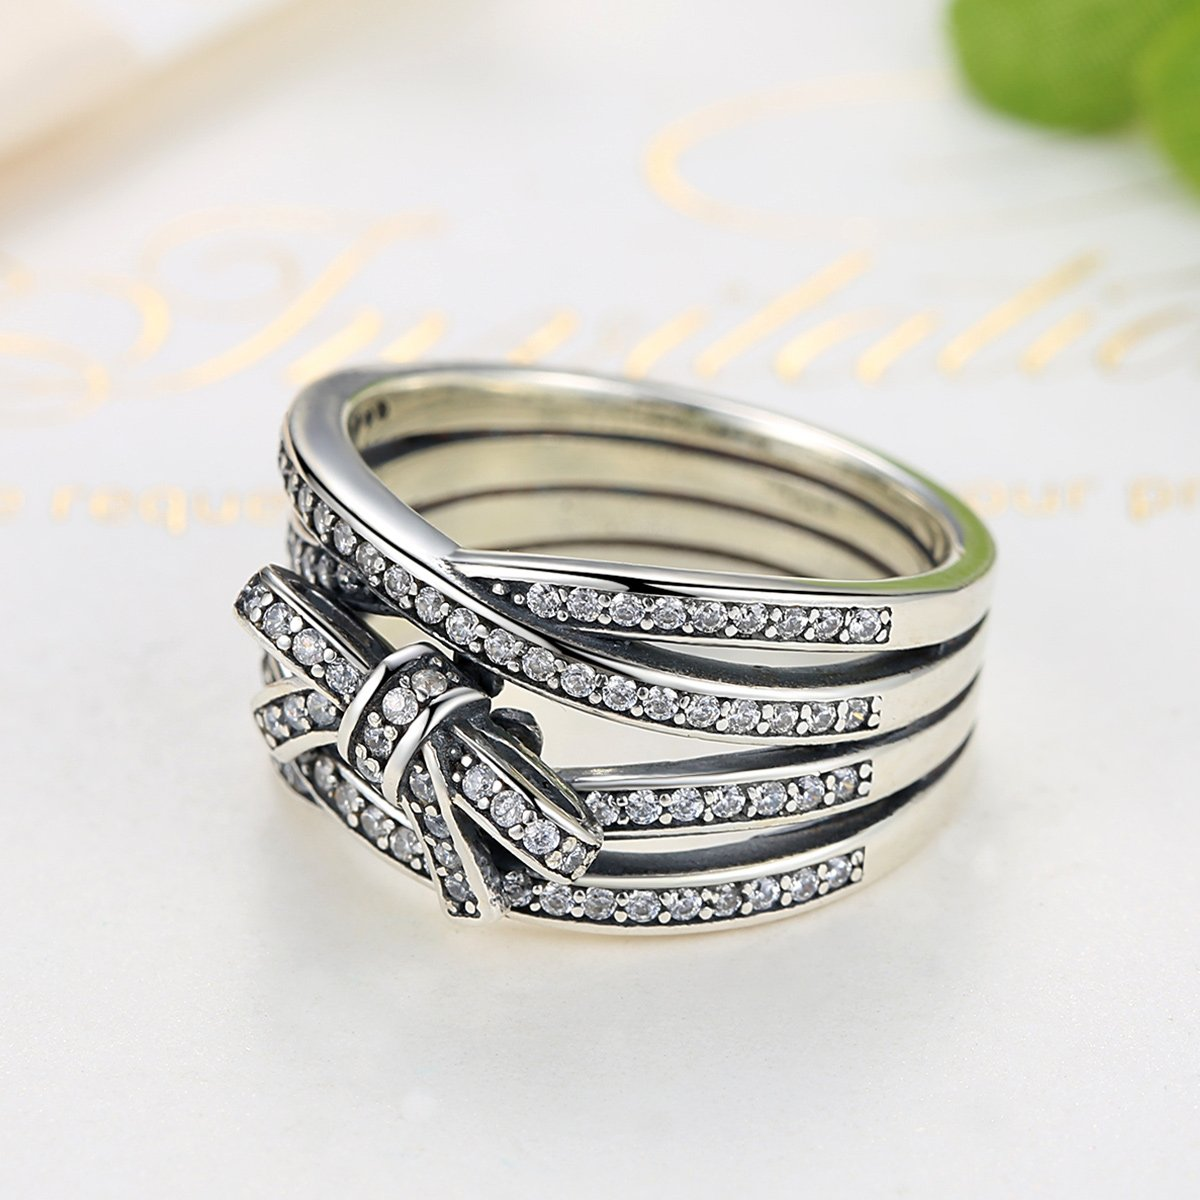 BAMOER 925 Sterling Silver Delicate Sentiments Ring 12mm Band with Sparkling Clear Cubic Zirconia Diamond Women Fashion Jewelry 6-9 (9) by BAMOER (Image #3)